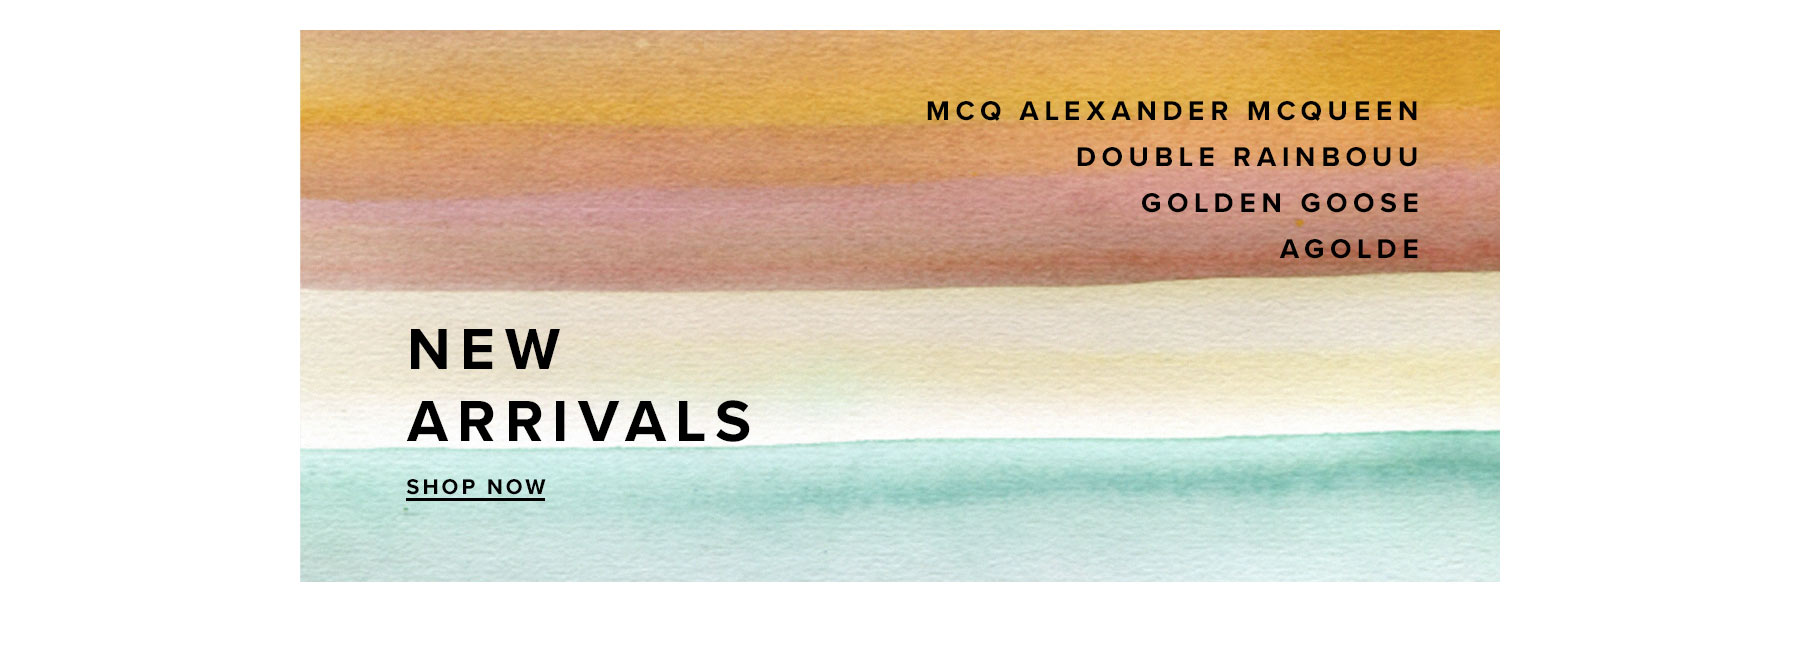 New Arrivals. McQ Alexander McQueen Double Rainbouu Golden Goose AGOLDE. Shop Now.